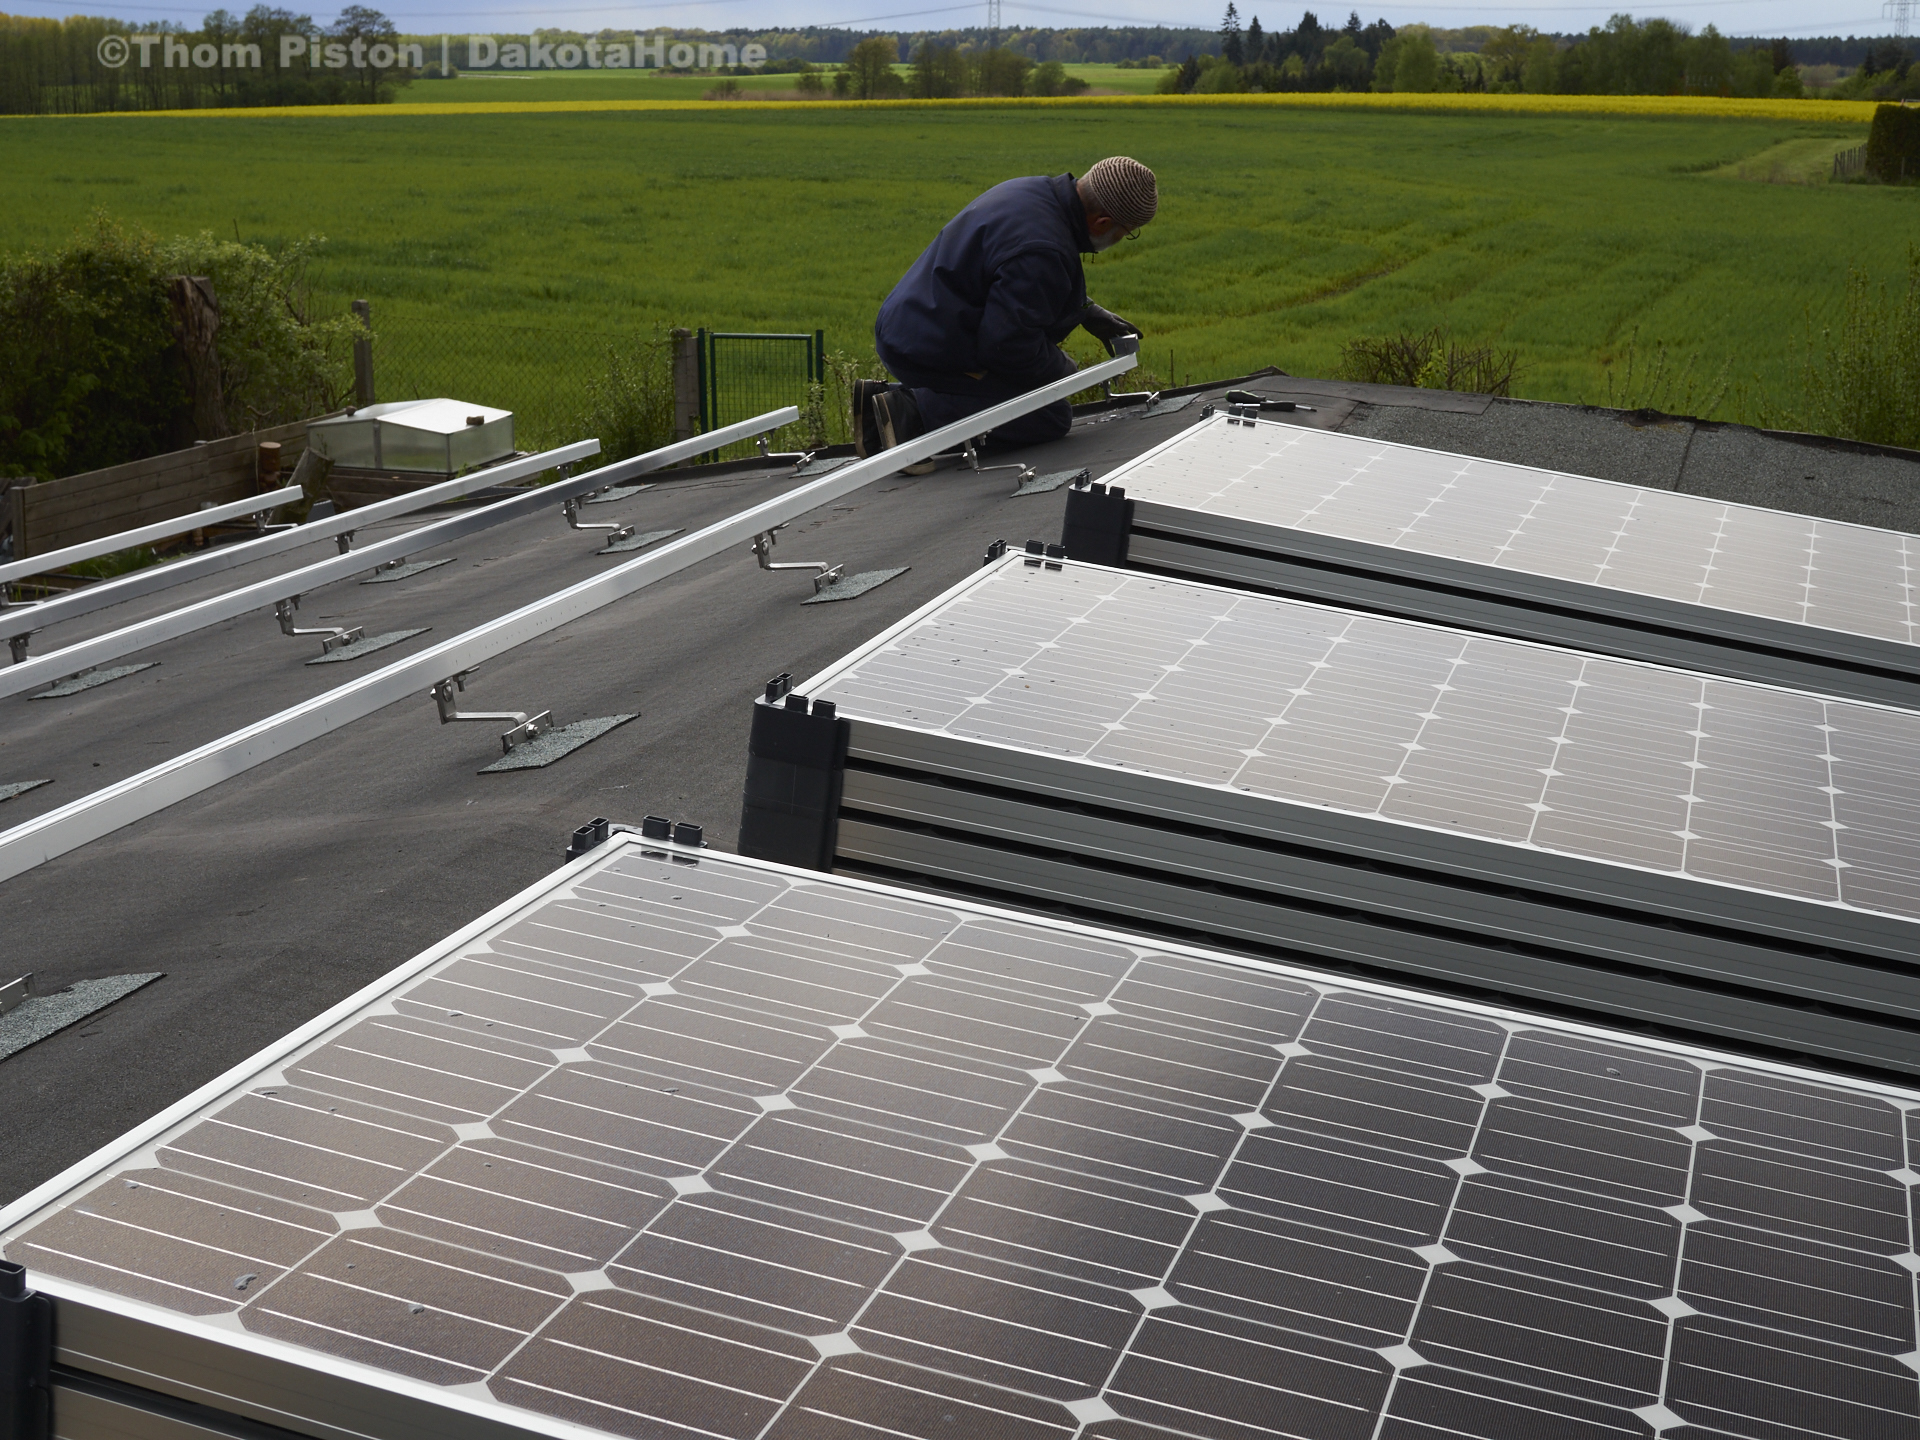 12 Photovoltaic, Solar Panels a 248 watt auf dem dach des dakota home